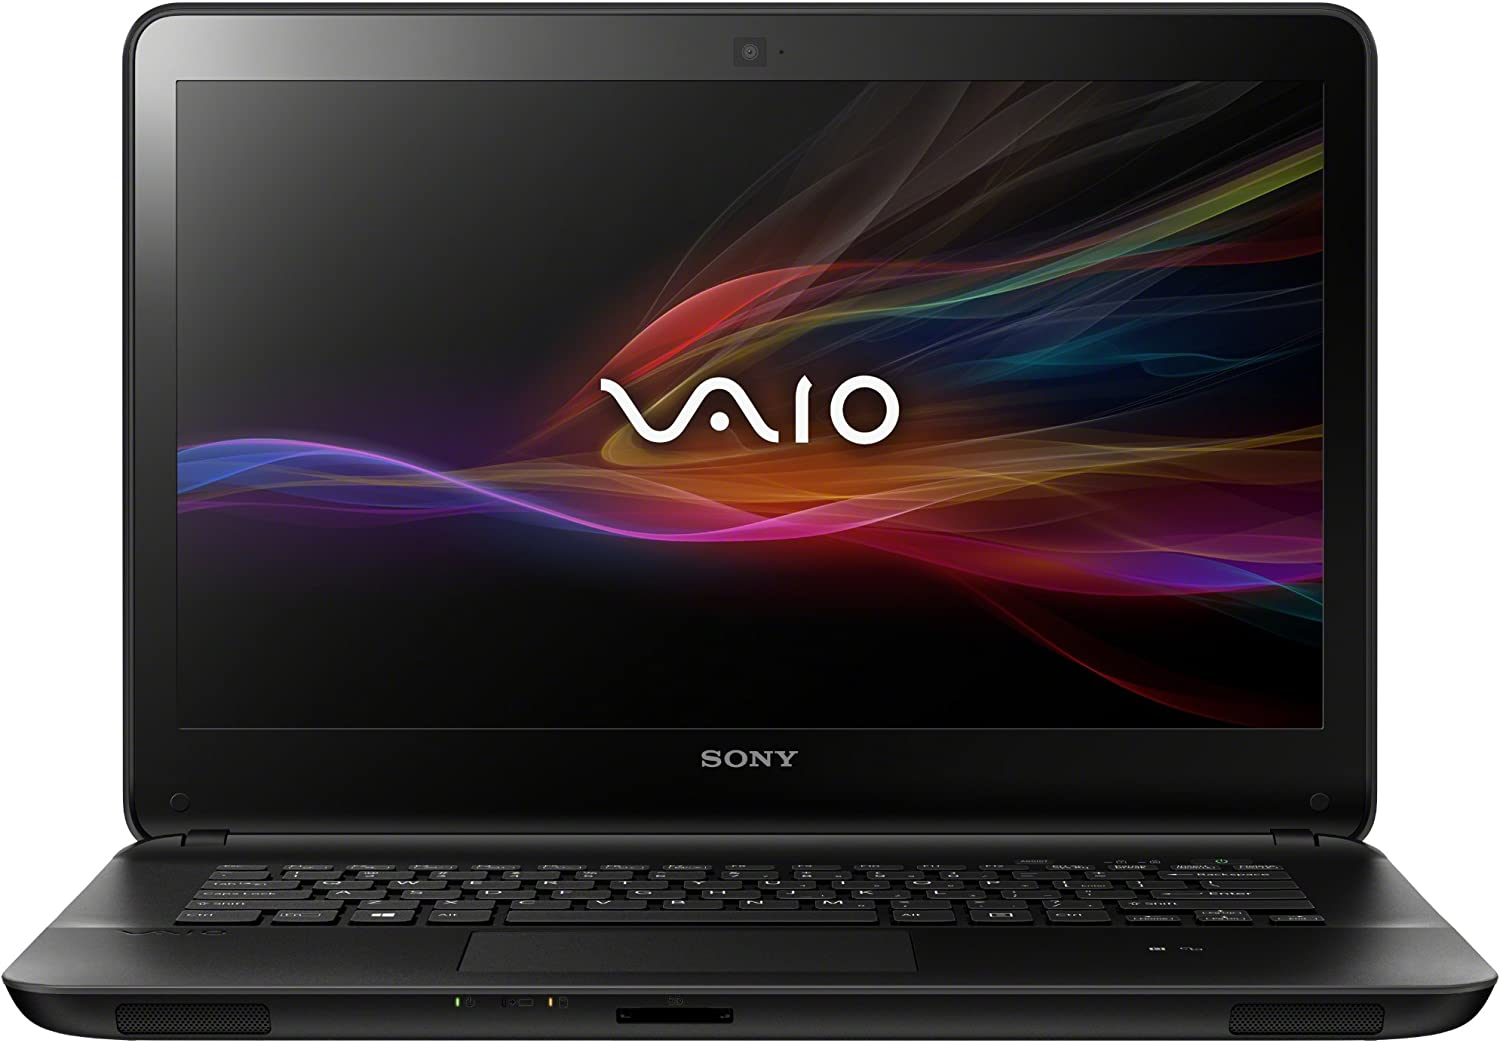 Sony VAIO Fit Series SVF1421ACXB Laptop (Windows 8, Intel Pentium 2117U Processor, 14 inches Display, SSD: 500 GB, RAM: 4 GB DDR3) Black